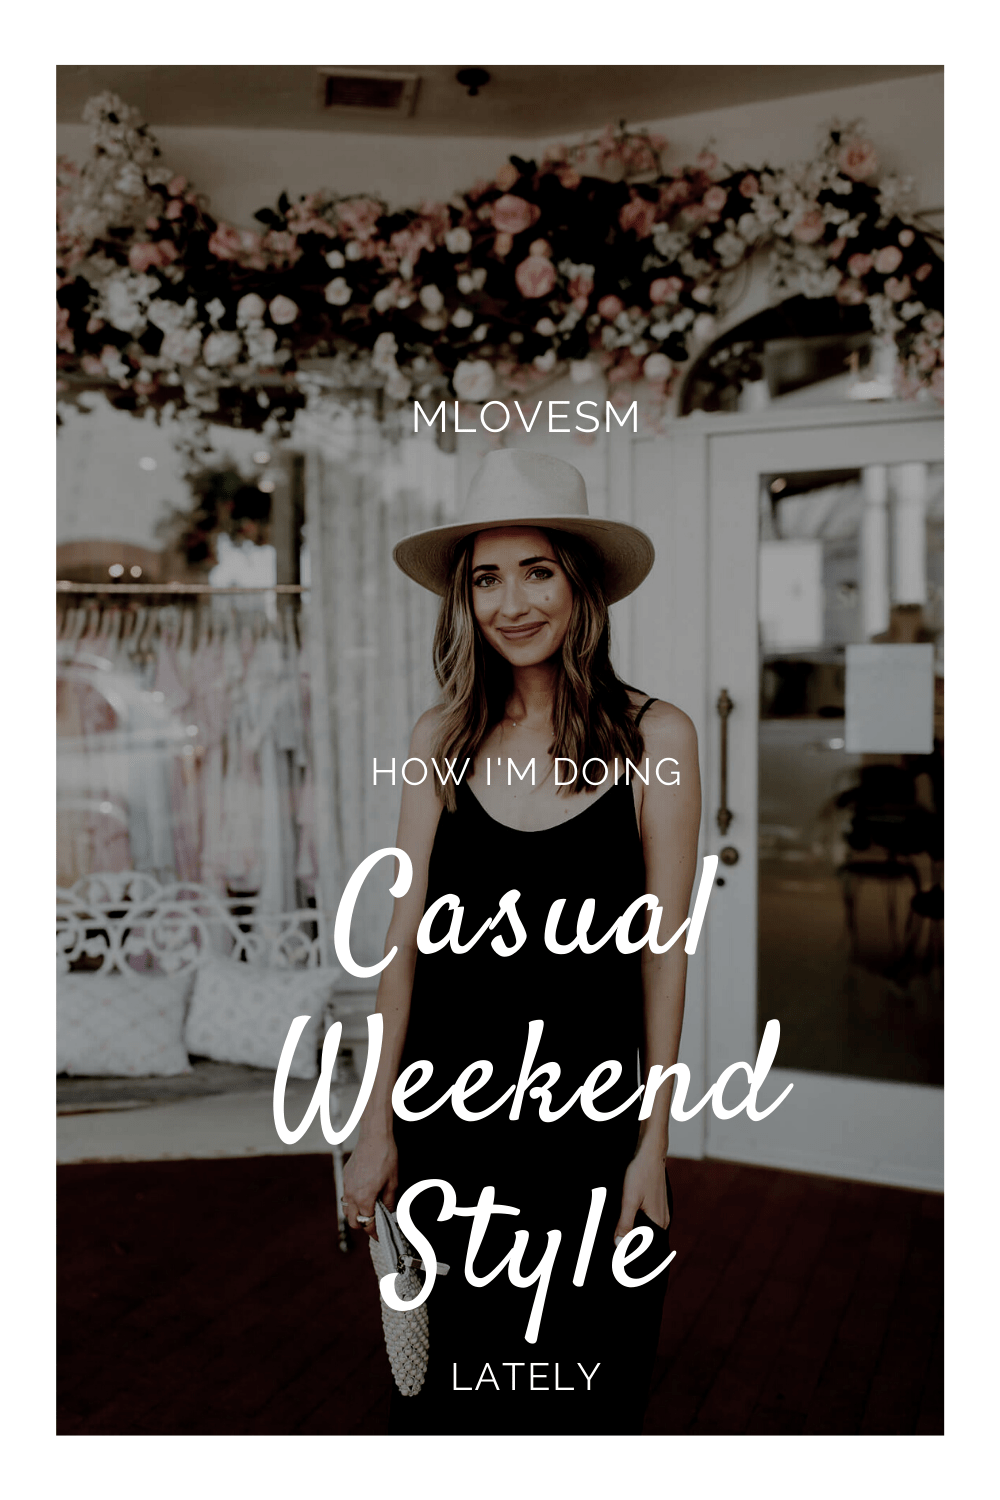 Here's how I'm doing casual weekend style! - M Loves M @marmar